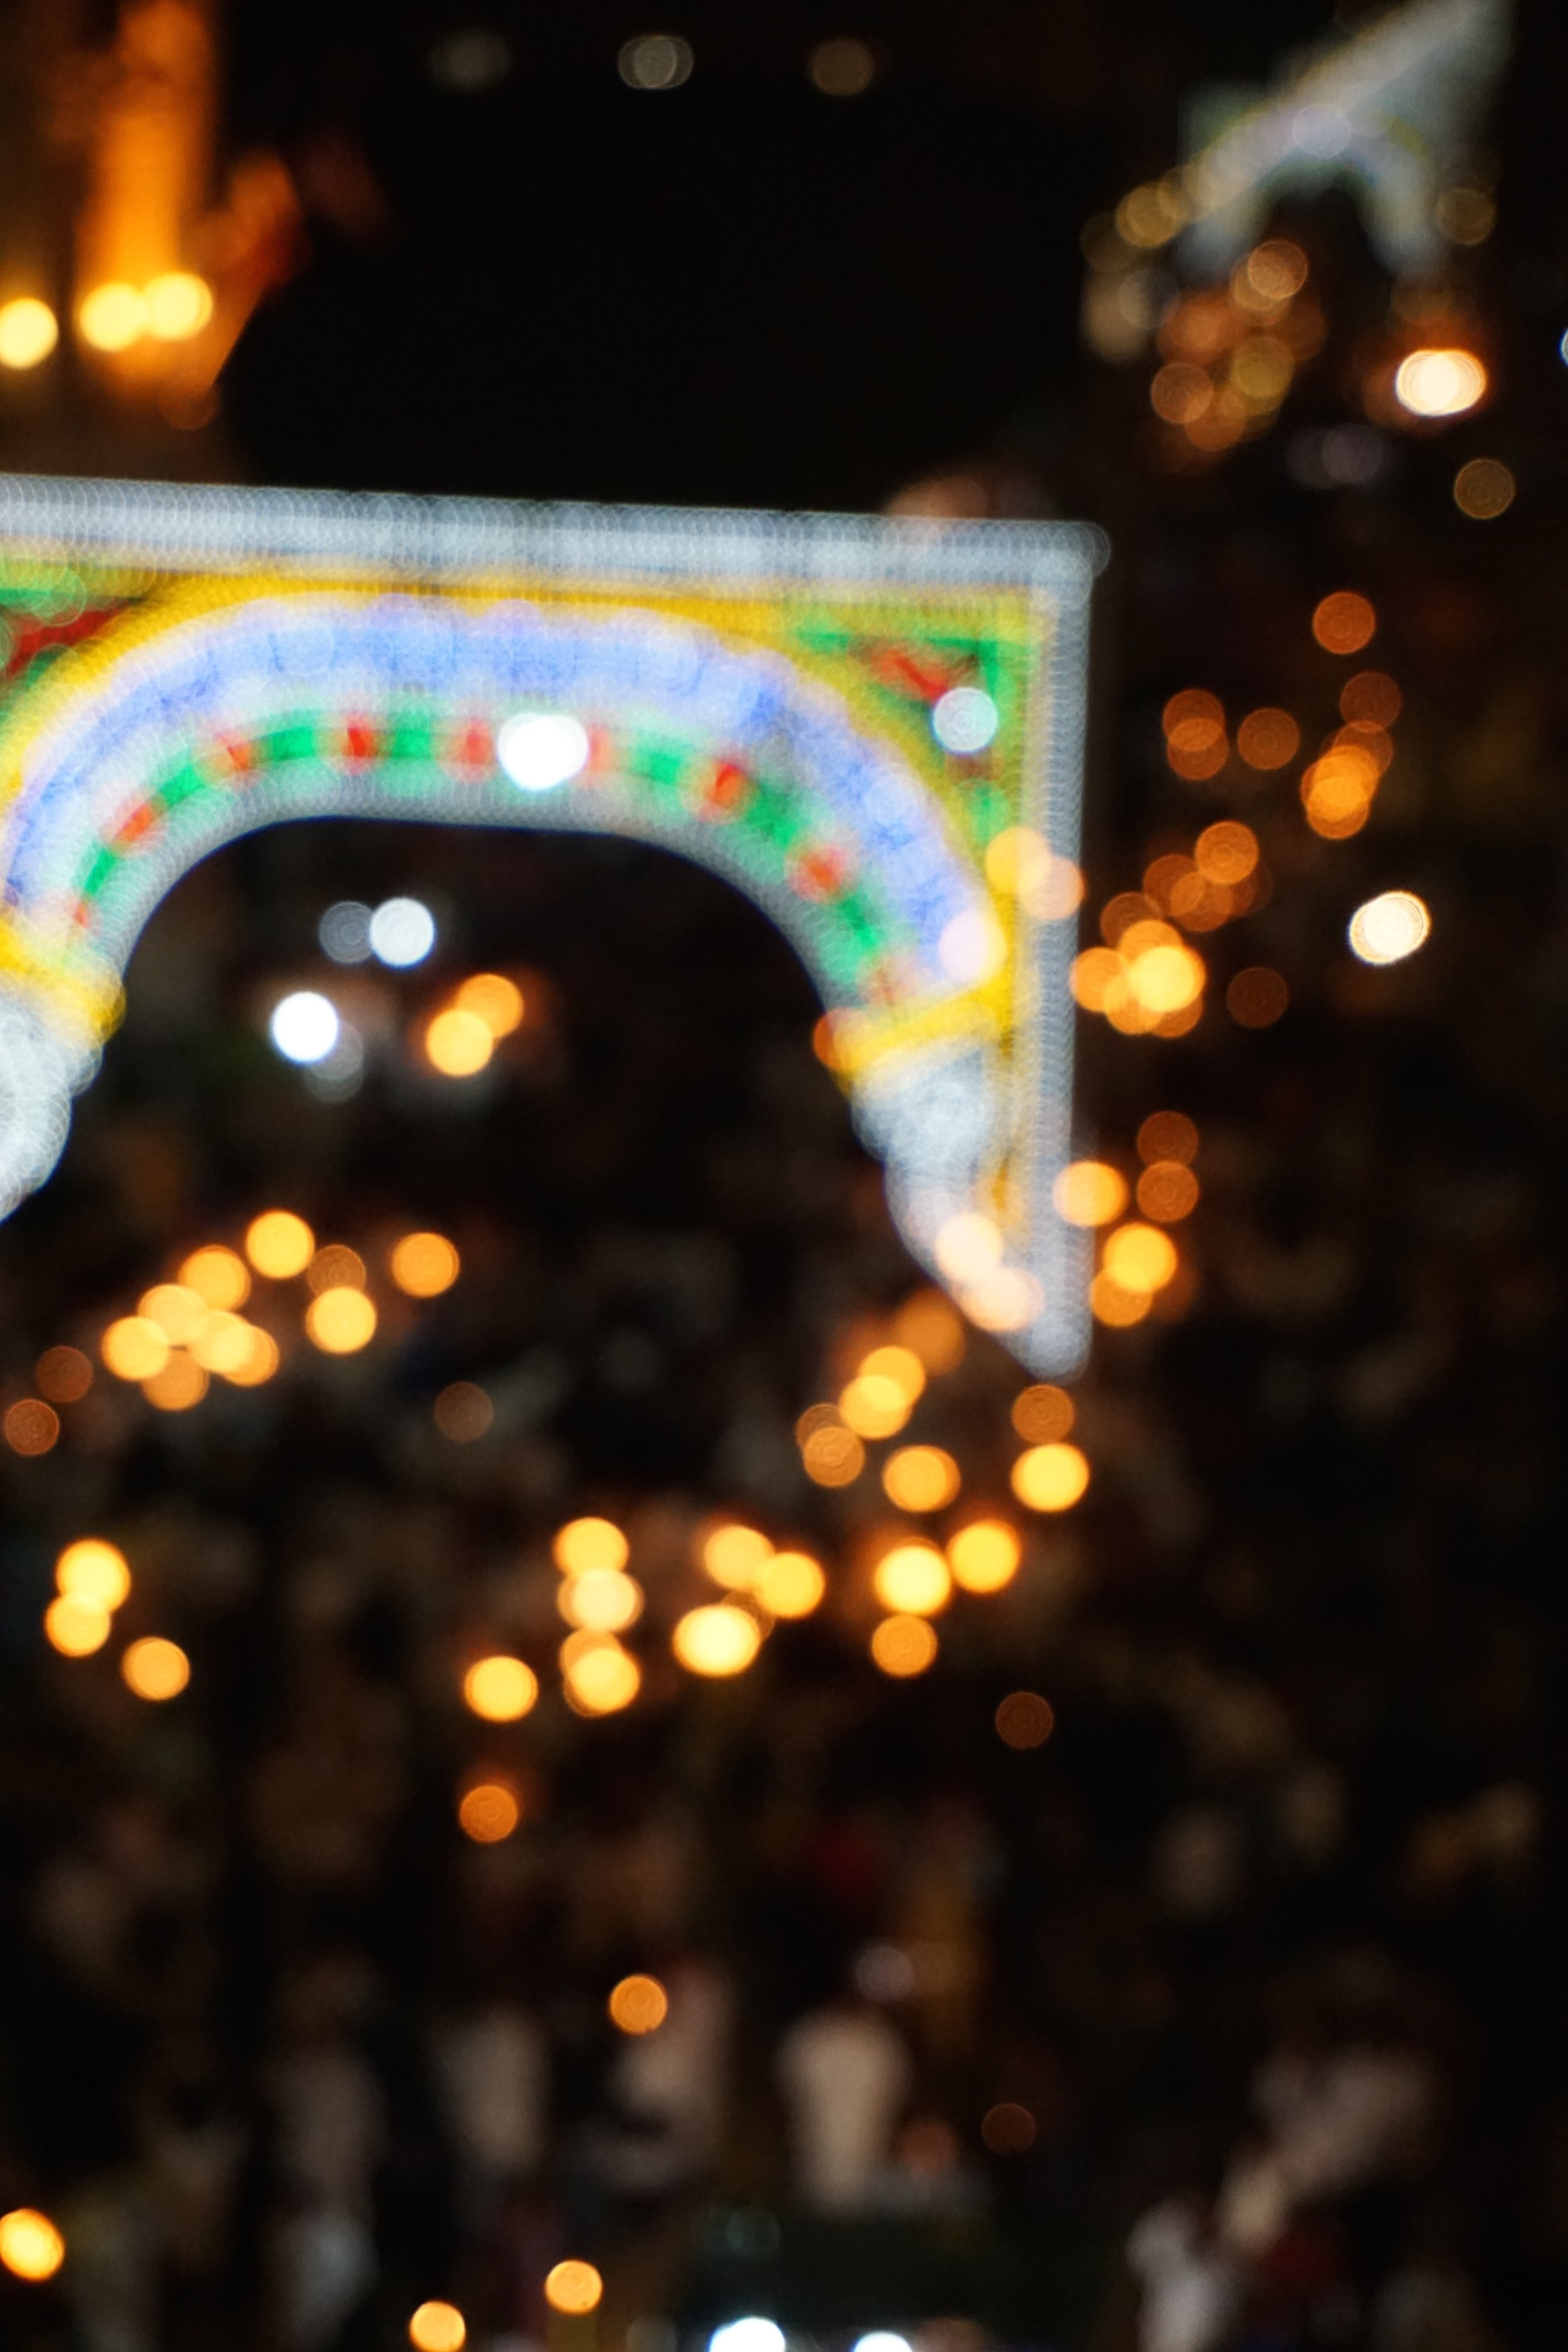 The never ending lights of Via Enta in Catania PICTURE BY TRAVEL ITALIANS STYLE